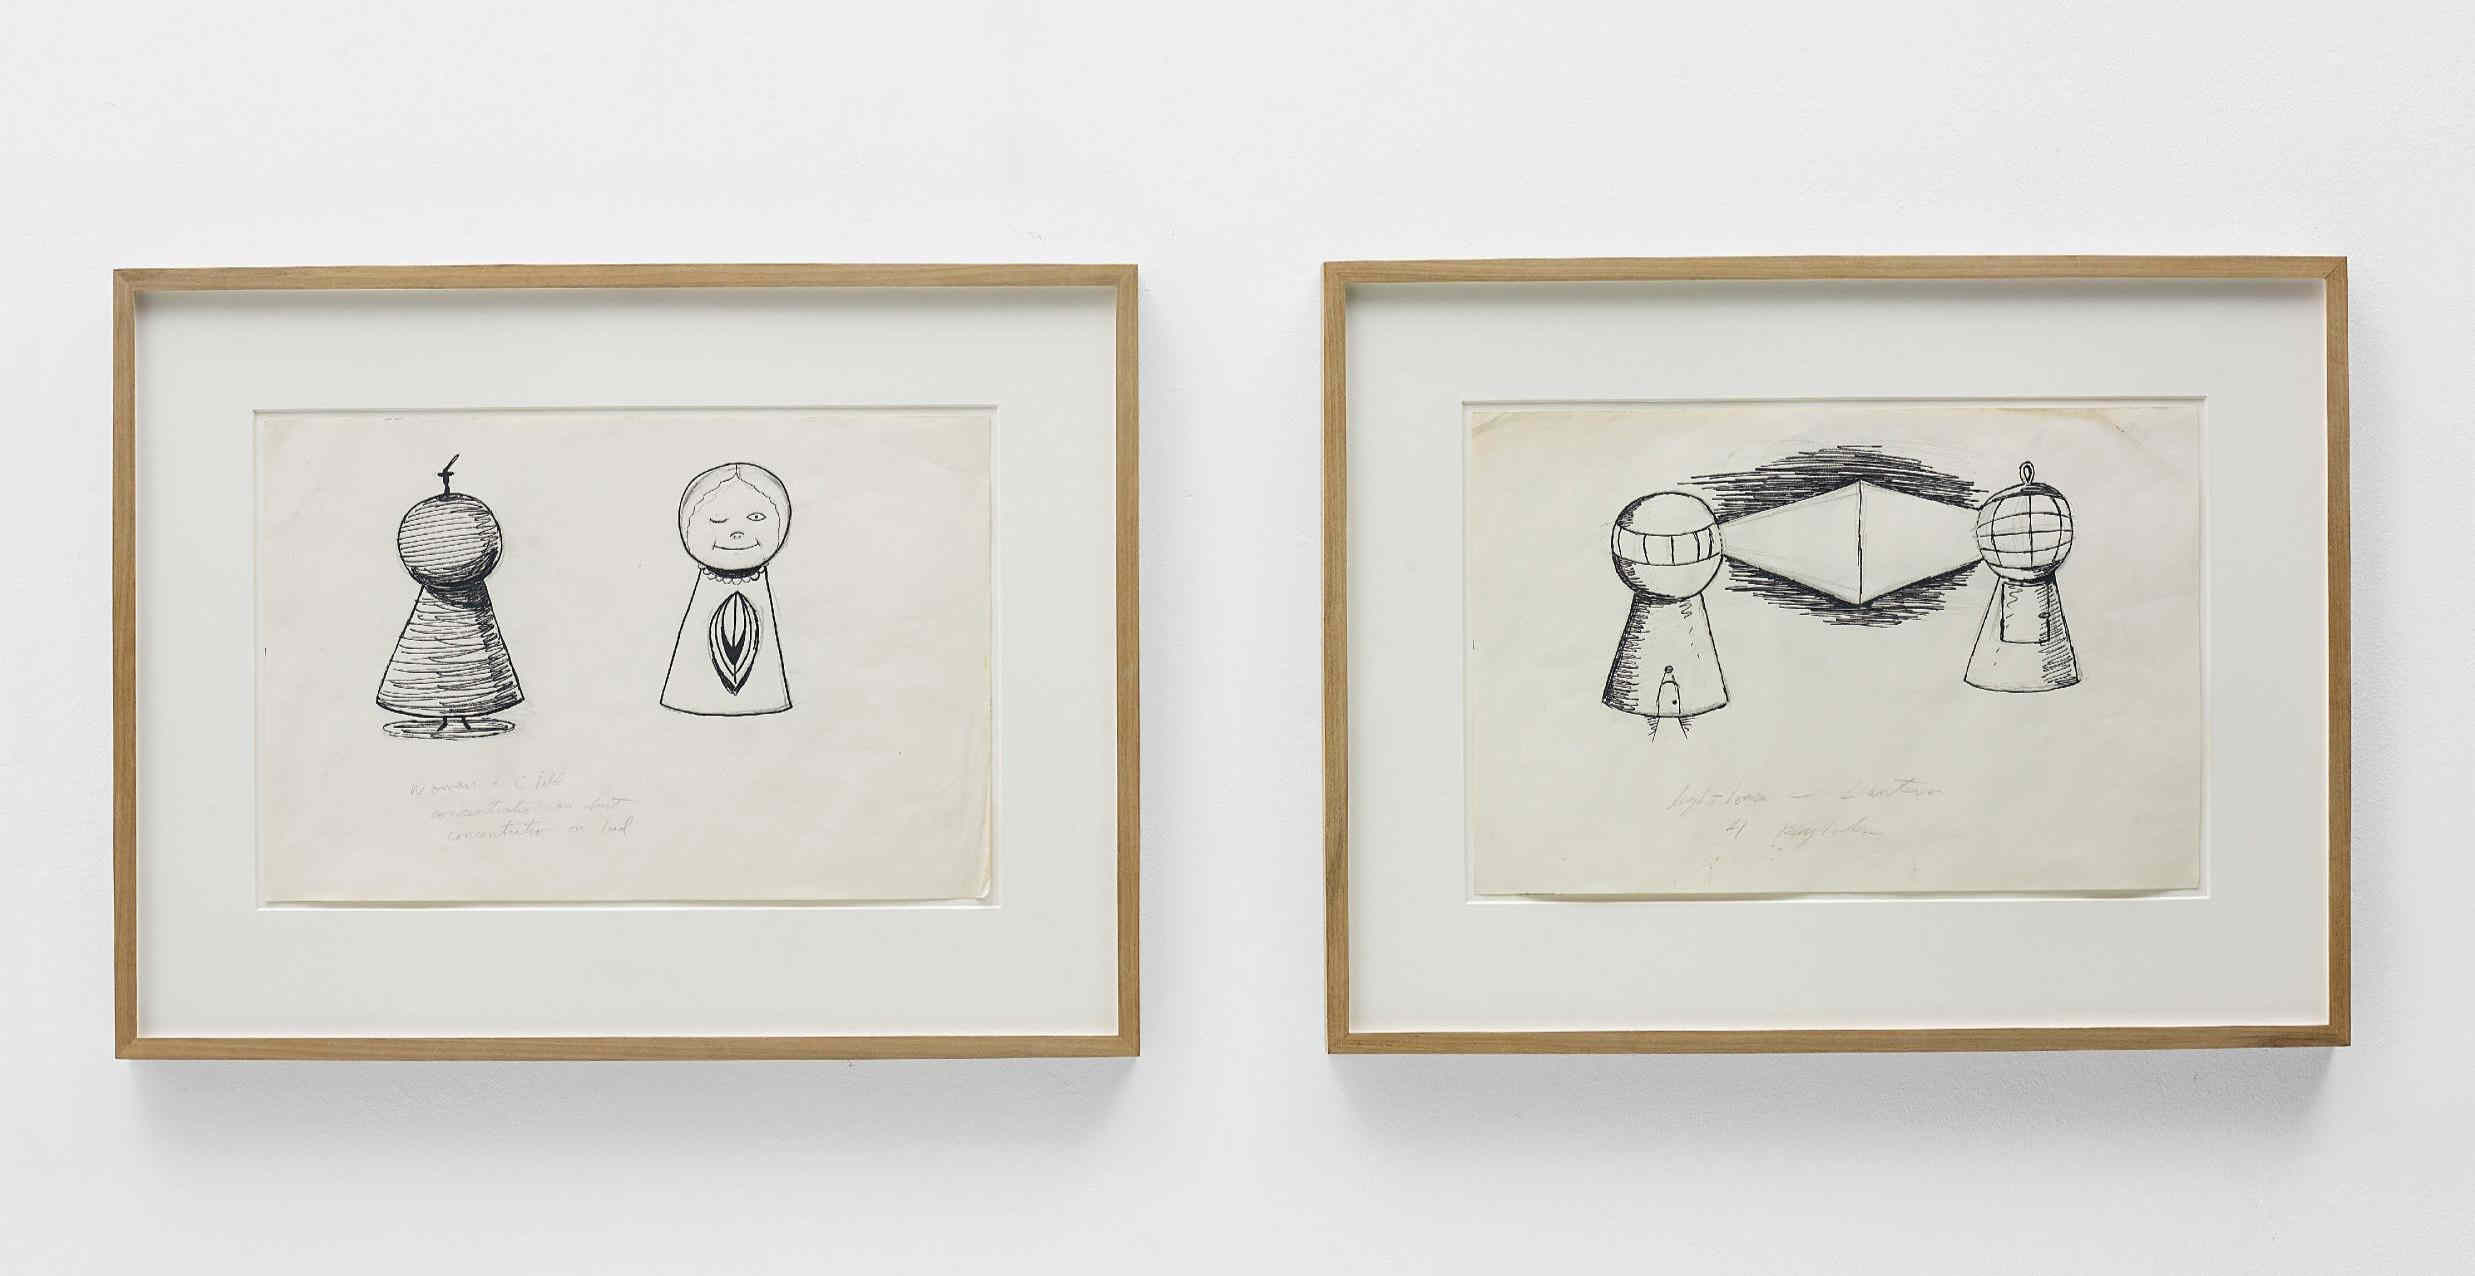 Mike Kelley-2 works: (i) Meditation on a Can of Vernors; (ii) Lighthouse-Lantern 1-1981